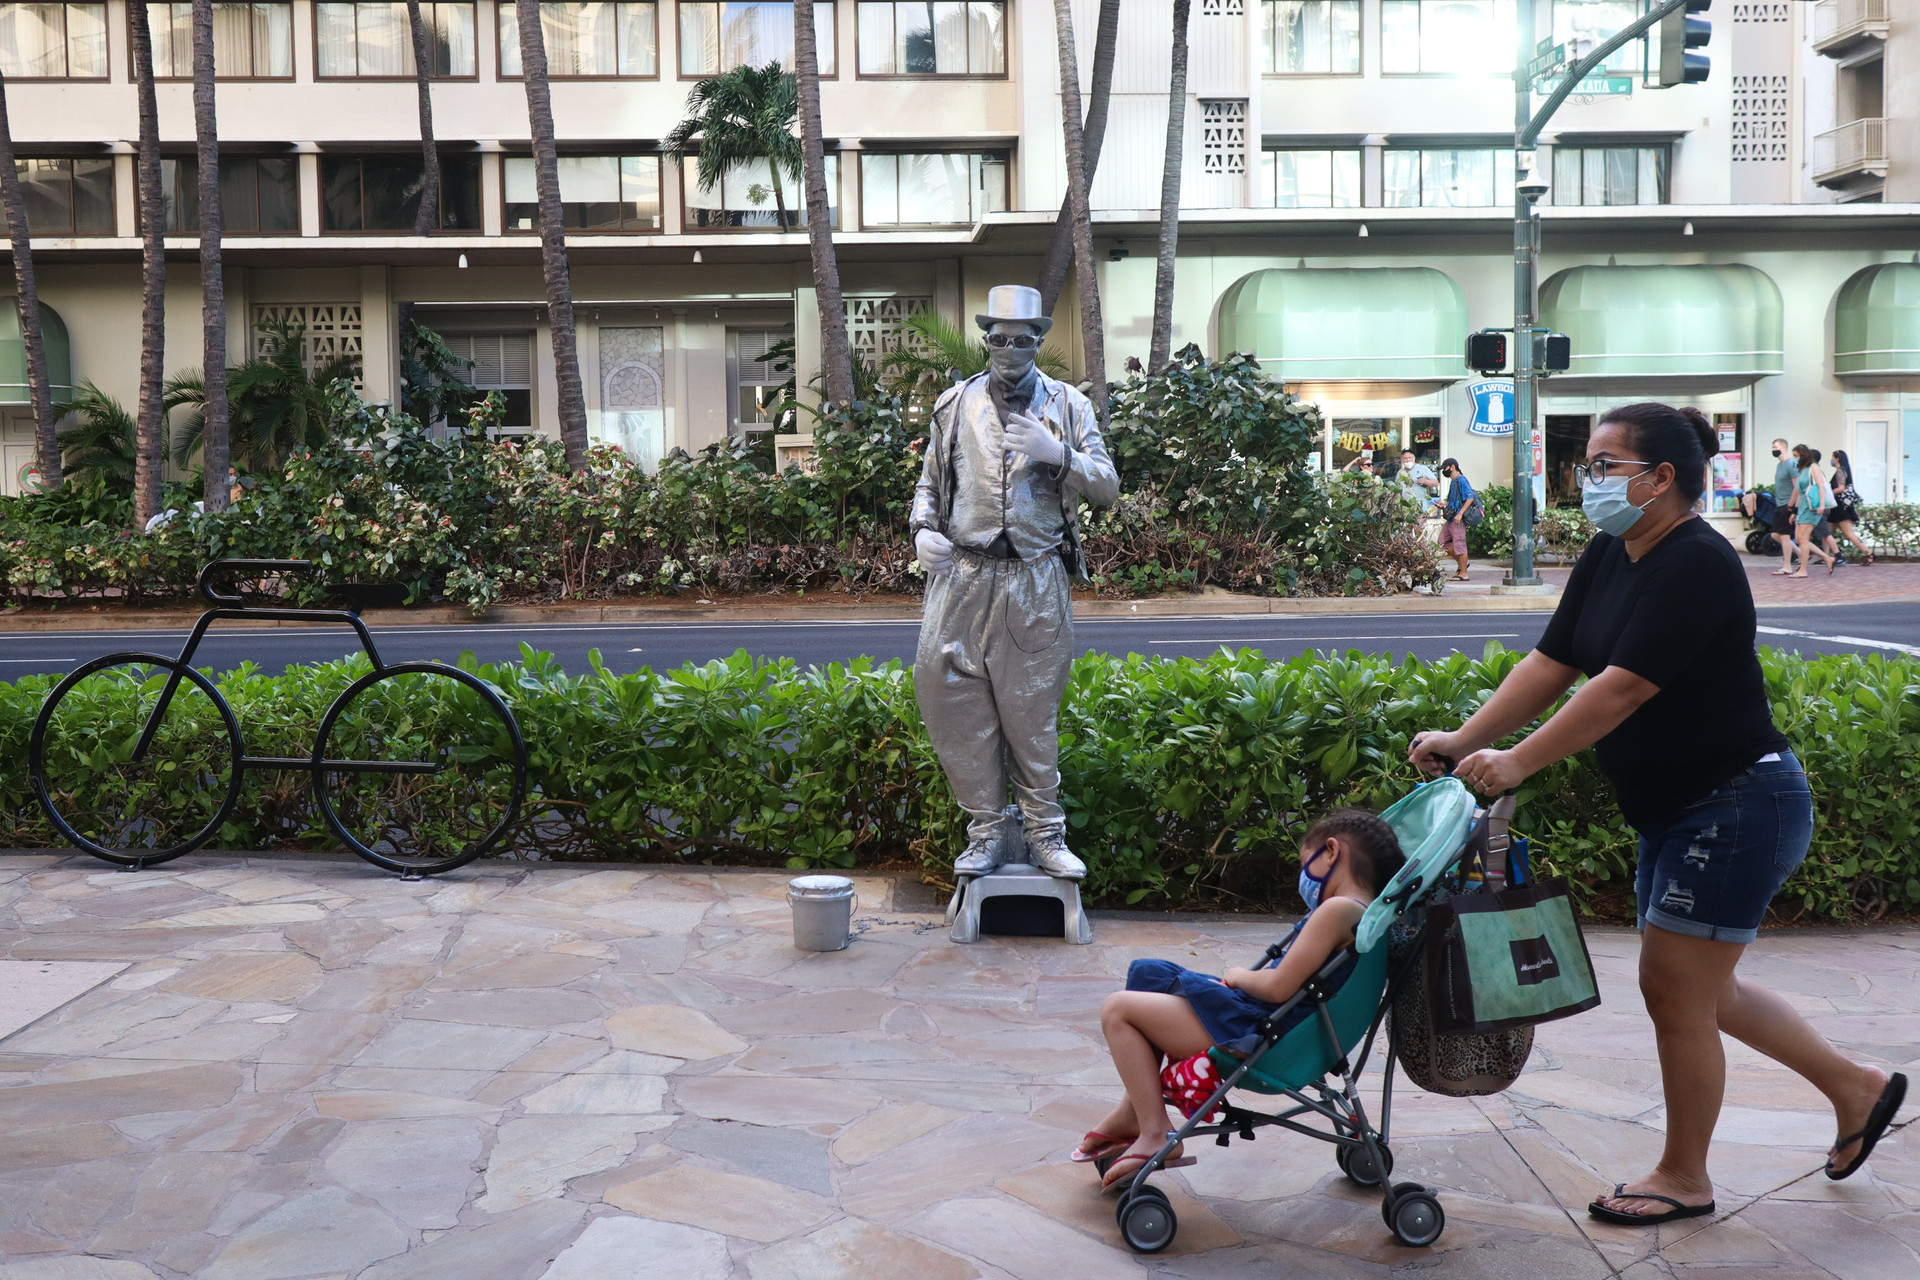 With tourists re-entering Hawaii, street artists have slowly started to return at the Waikiki Beach strip.